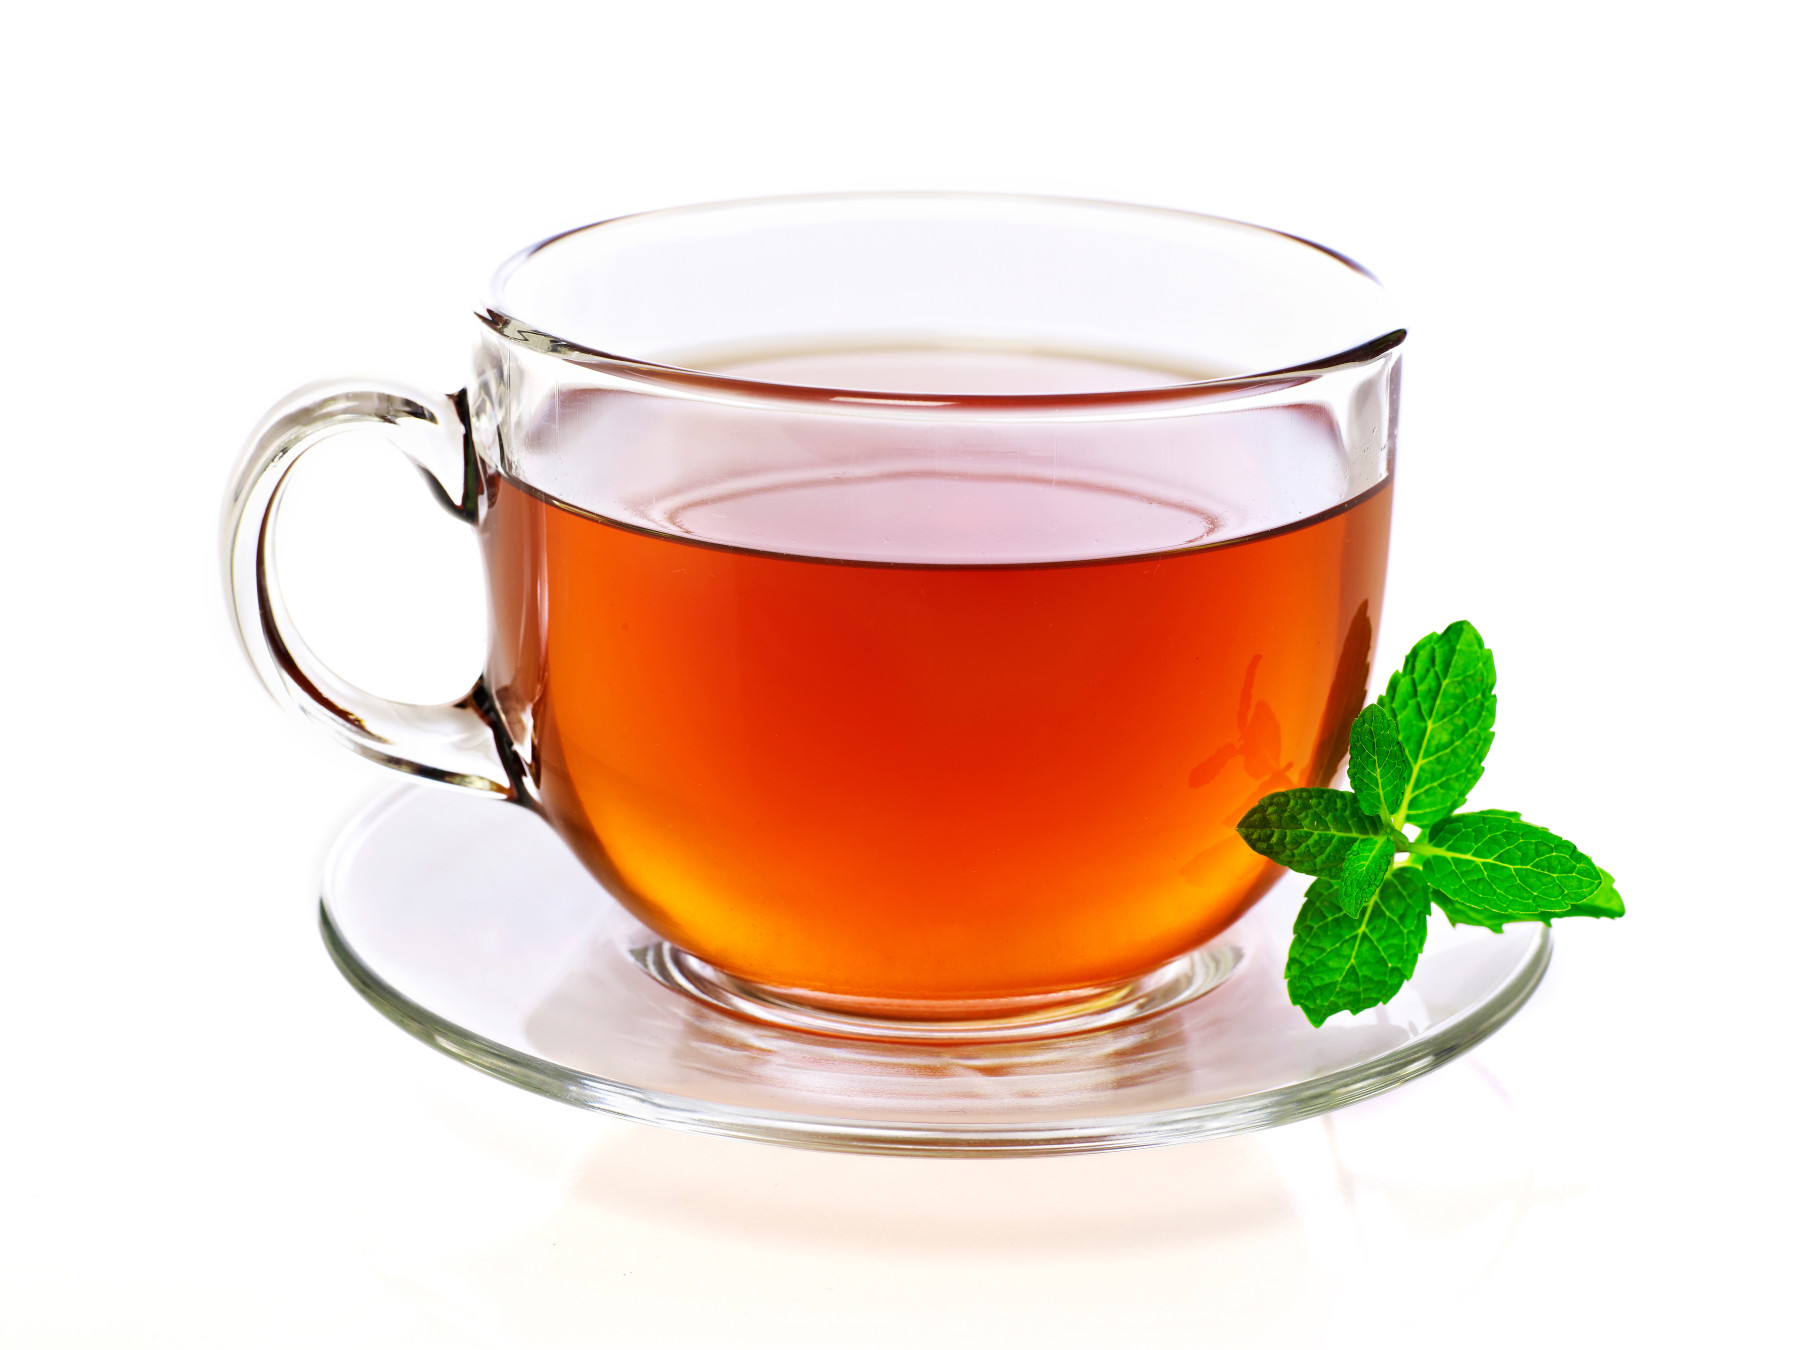 Top 5 Tea Points In Nashik For Tea Addicted Peoples - 7th Traveler